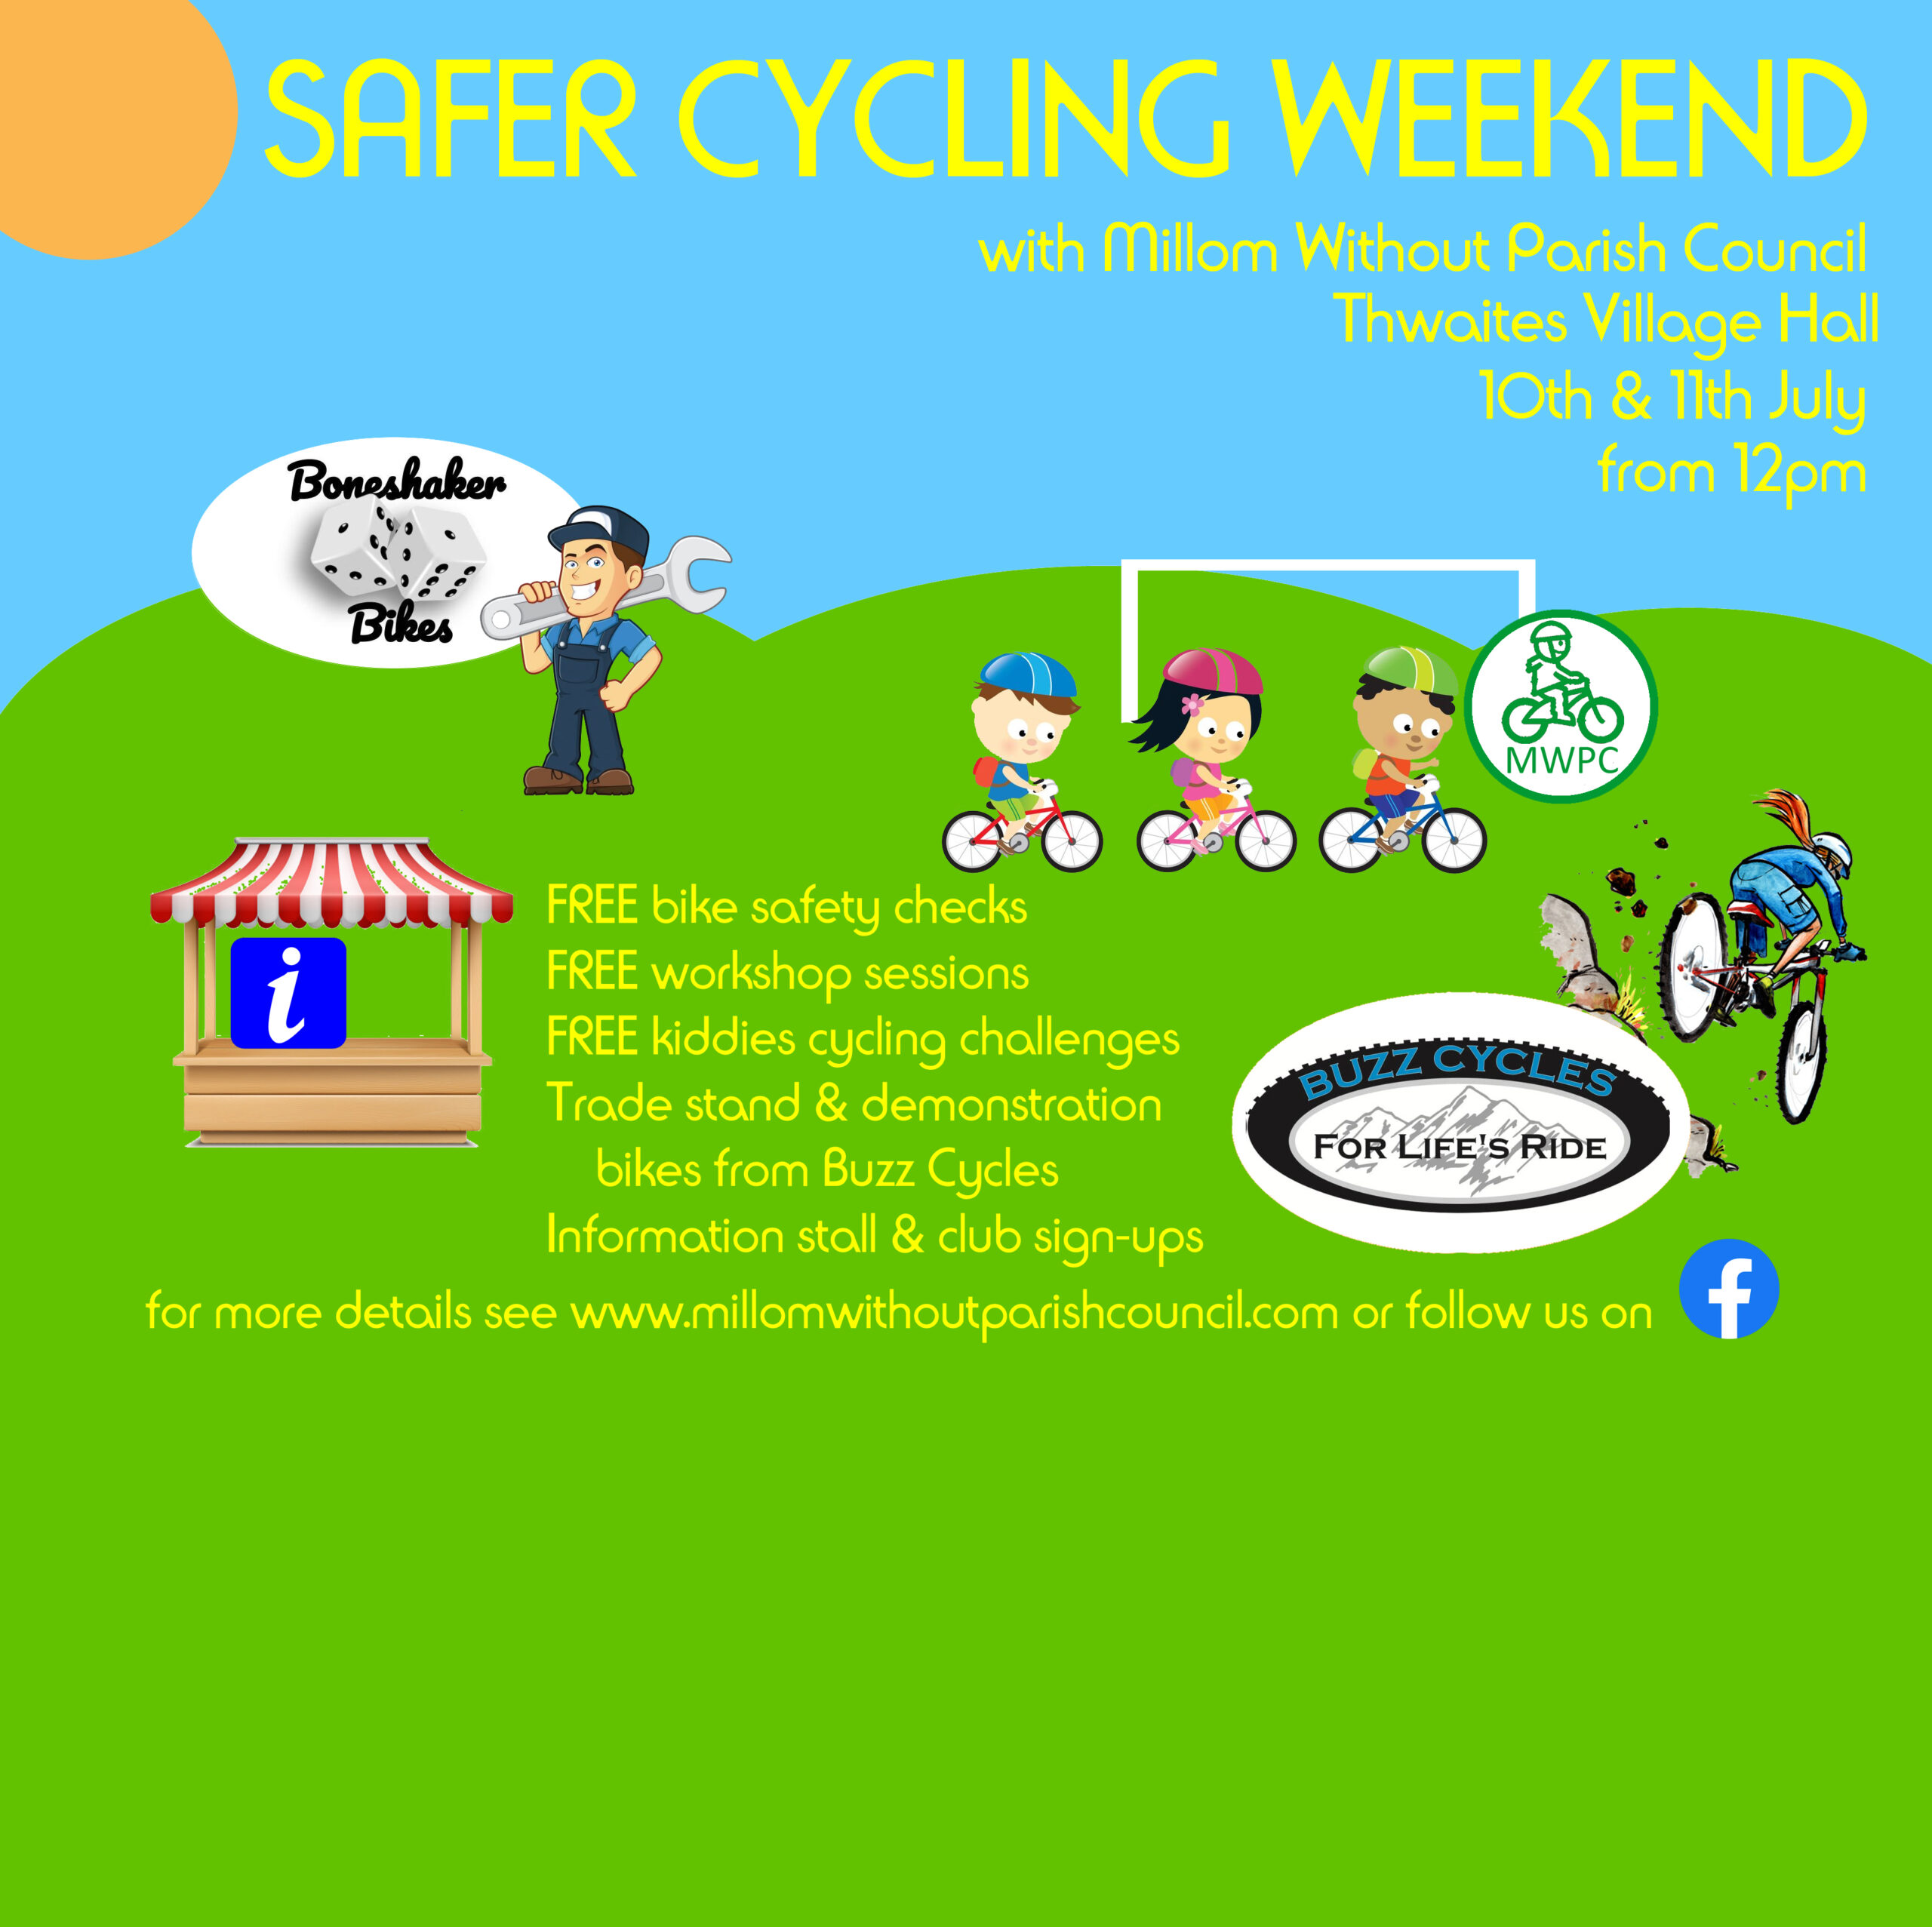 Safer Cycling weekend Website Poster